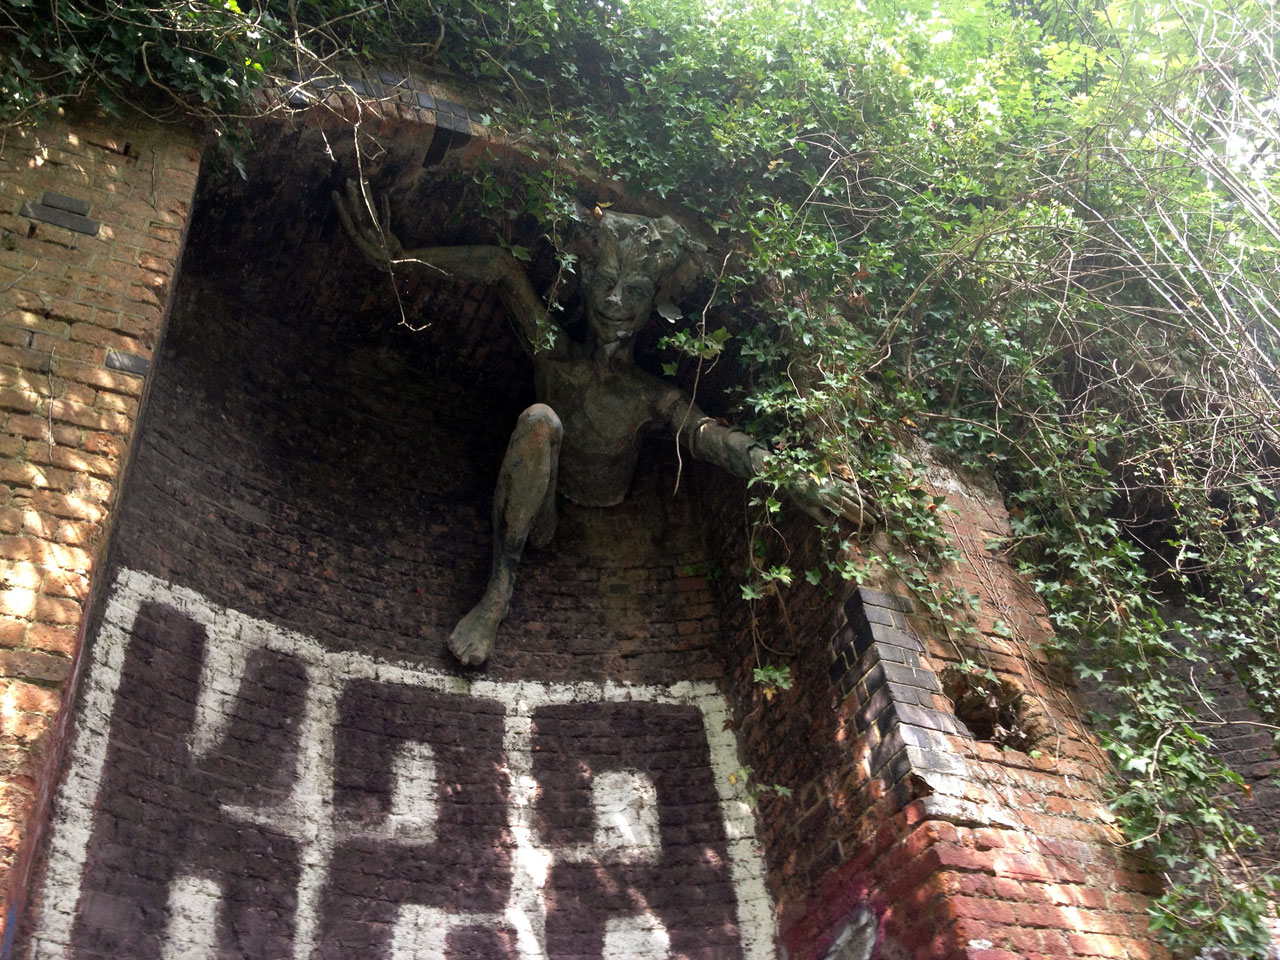 The spriggan, Parkland Walk, London